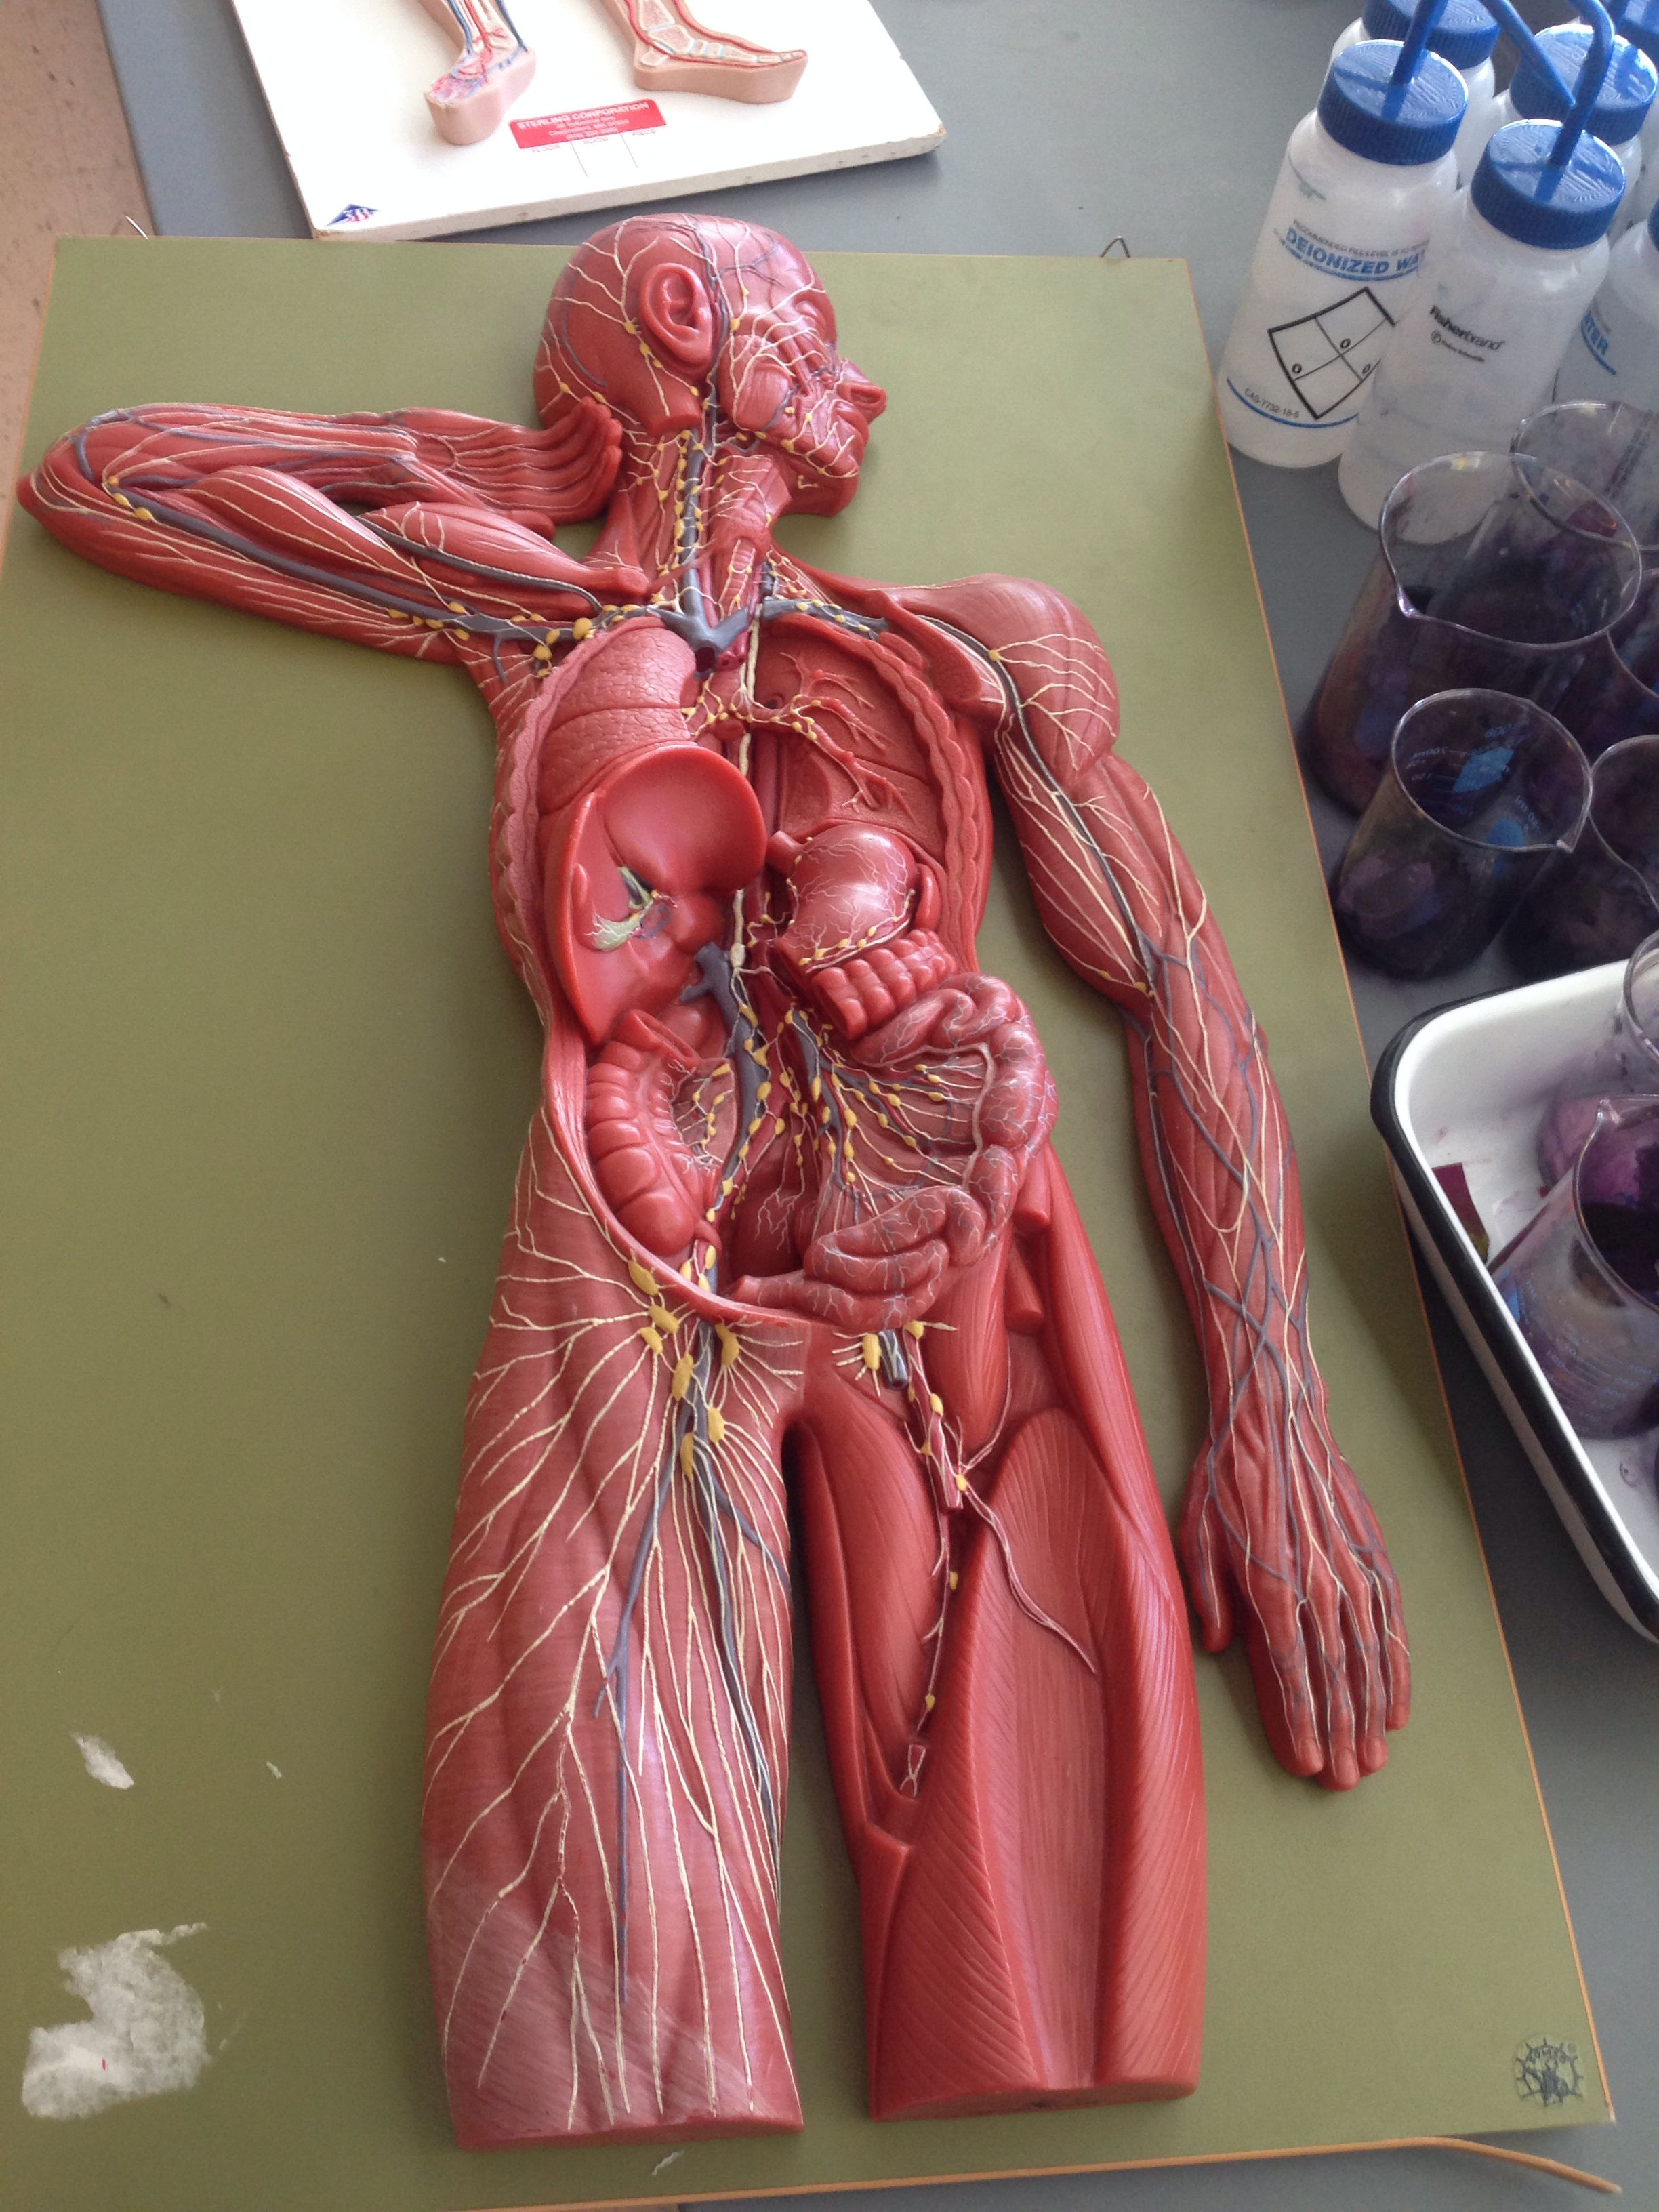 Lymphatic system model | Anatomy and physiology 2 pictures ...